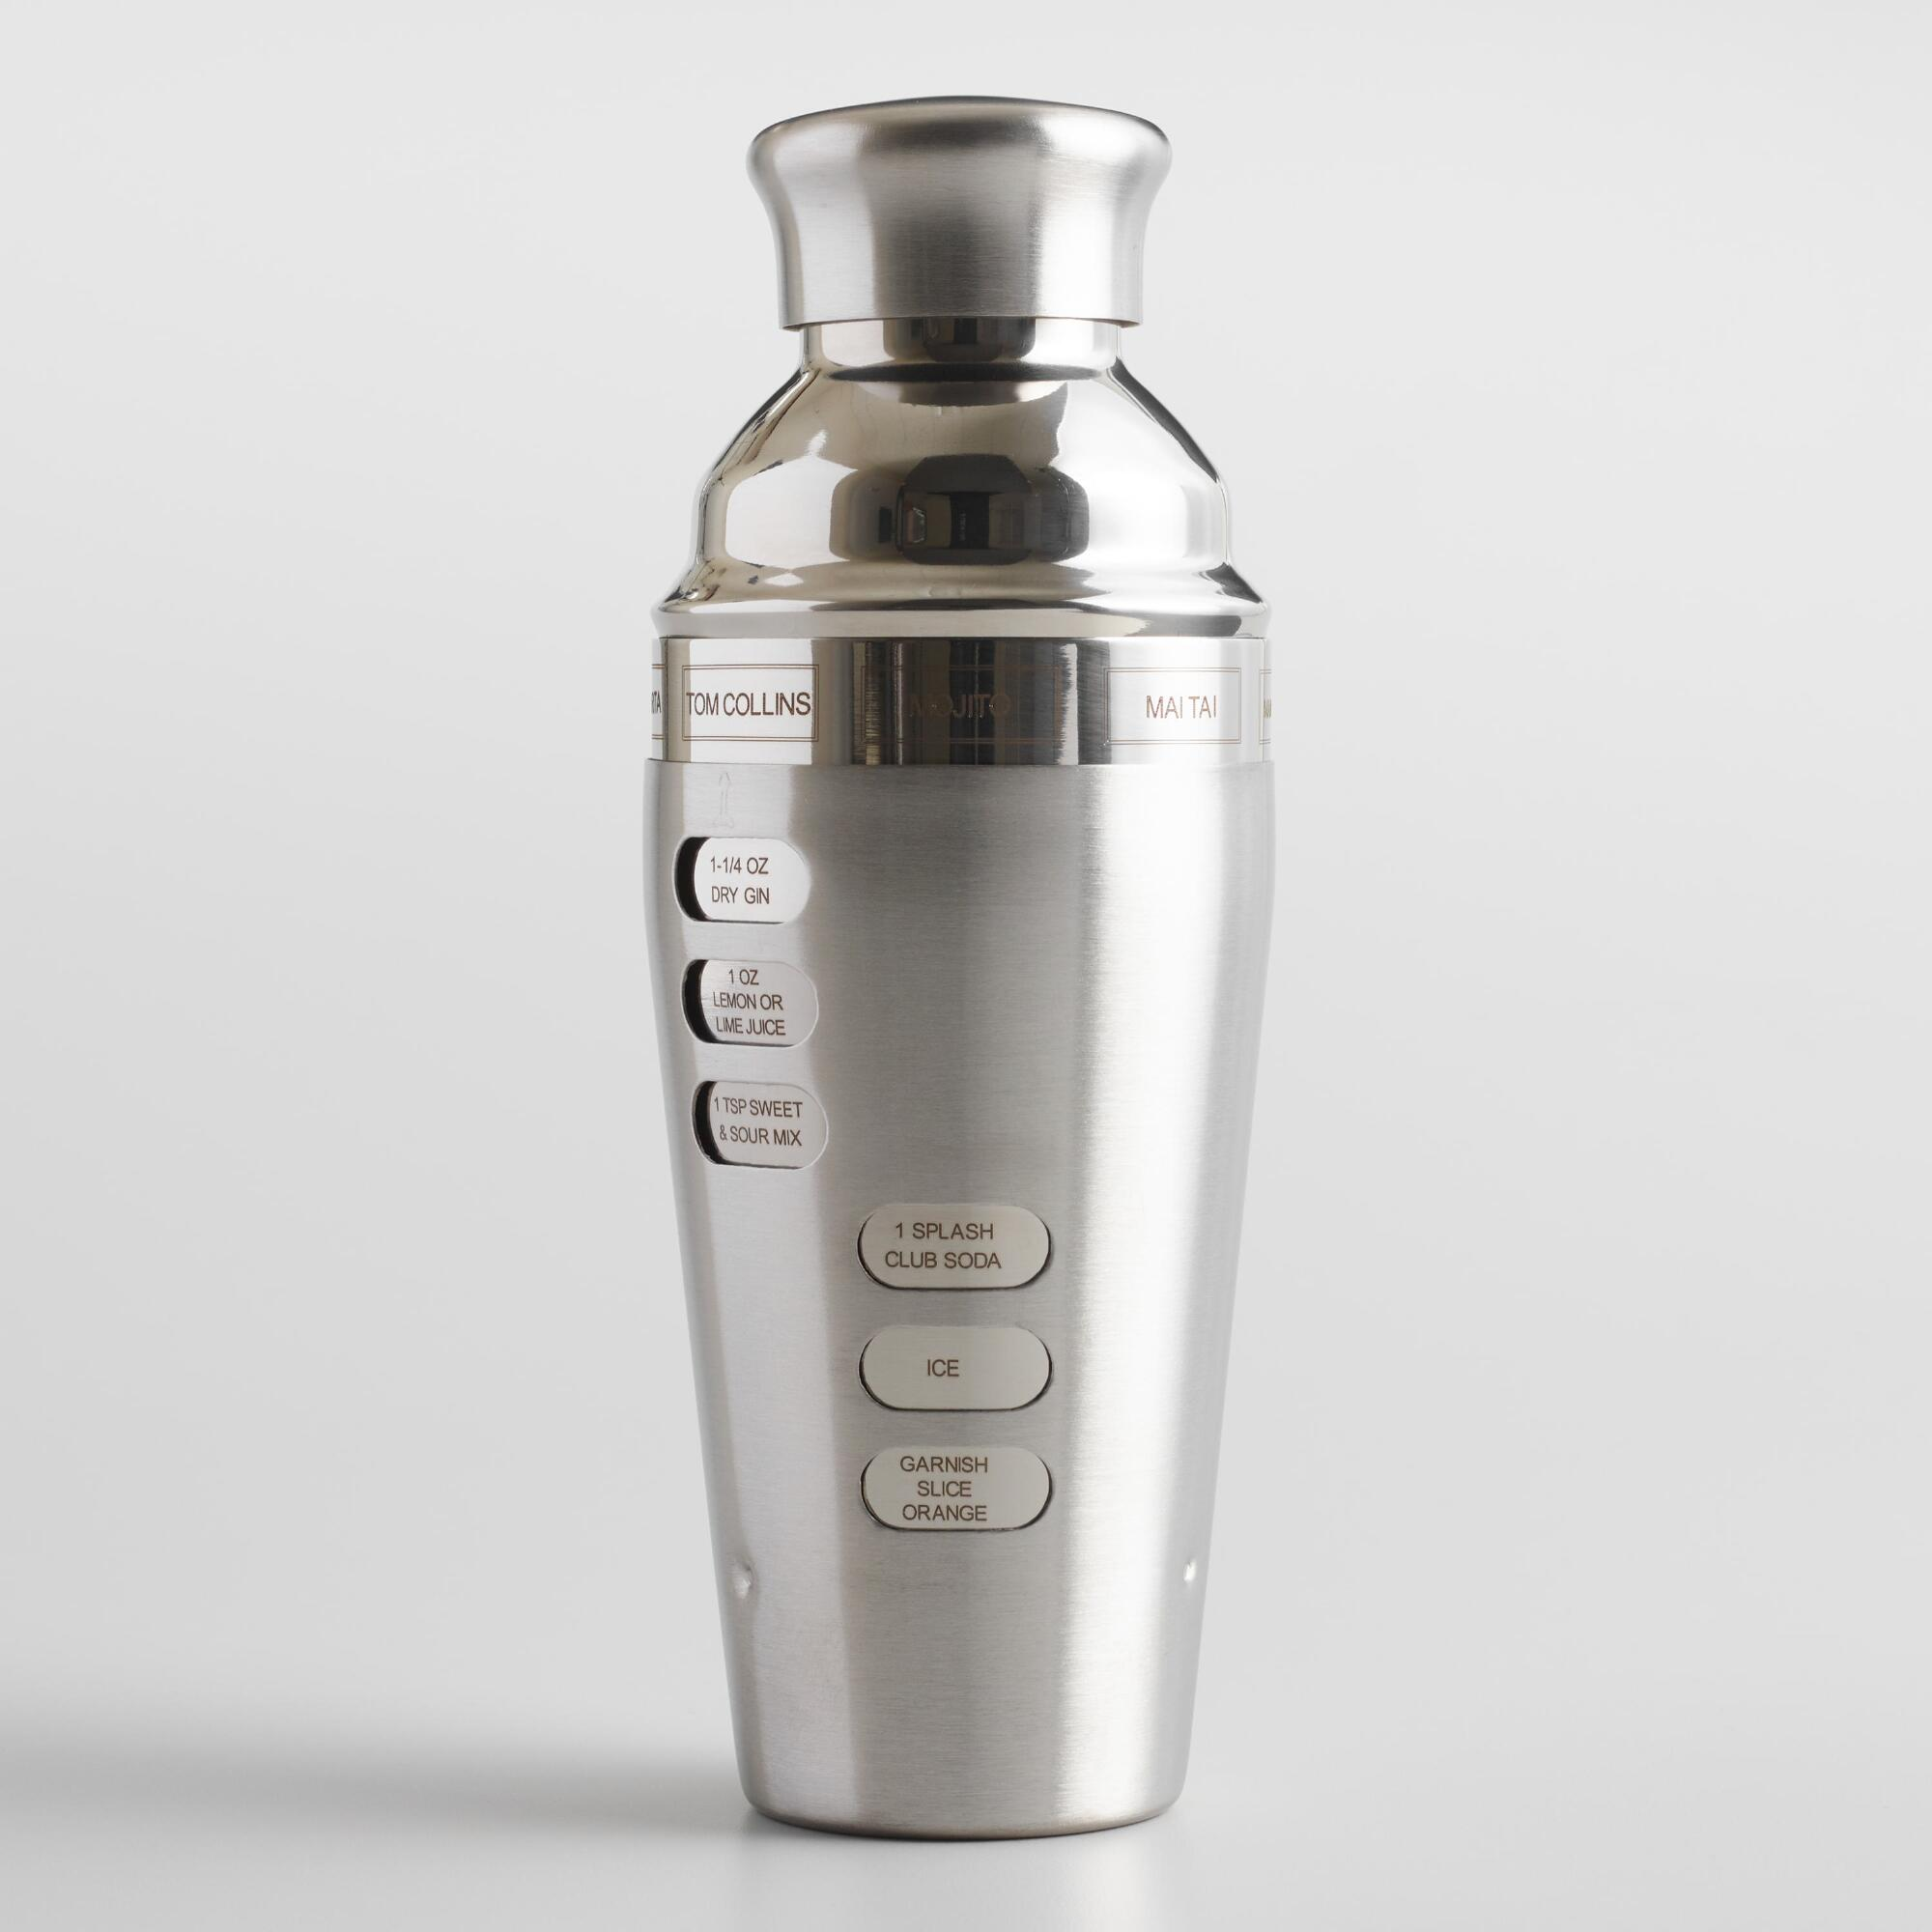 Oggi Dial A Drink Stainless Steel Recipe Cocktail Shaker by World Market